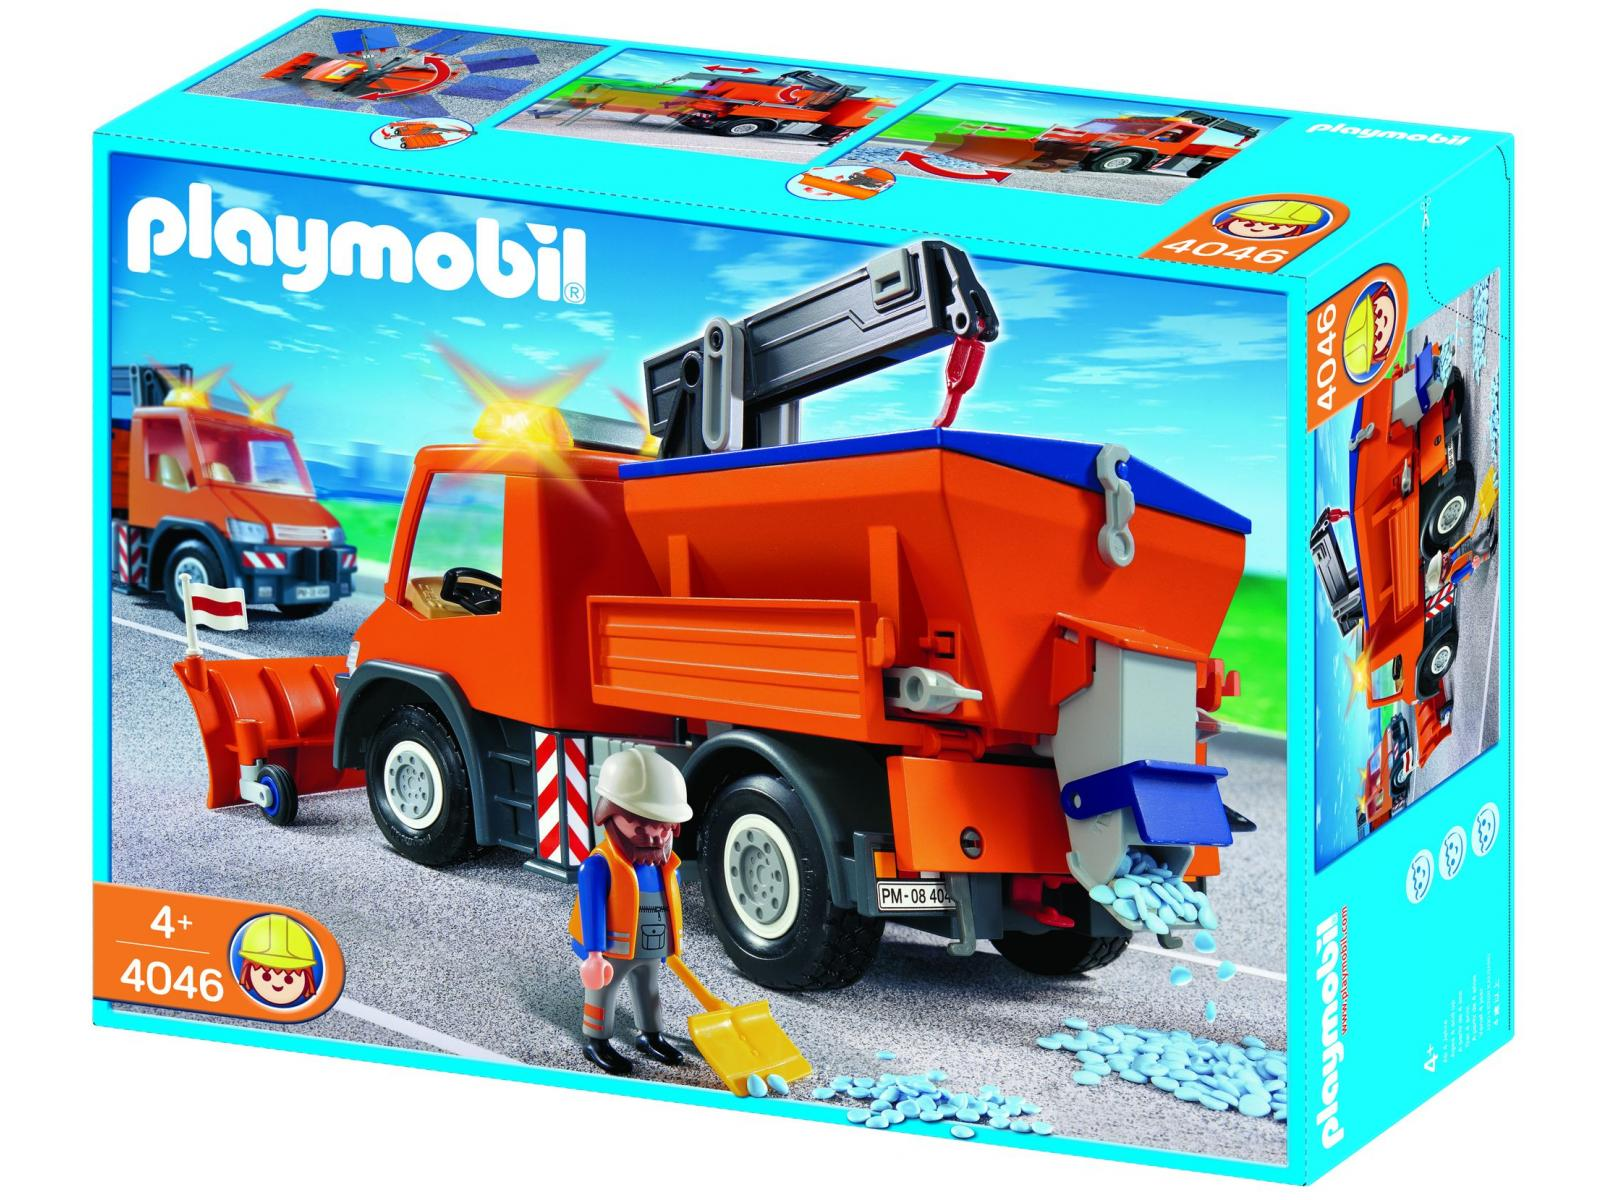 Playmobil chauffeur avec camion chasse neige 4046 - Playmobil camion chantier ...